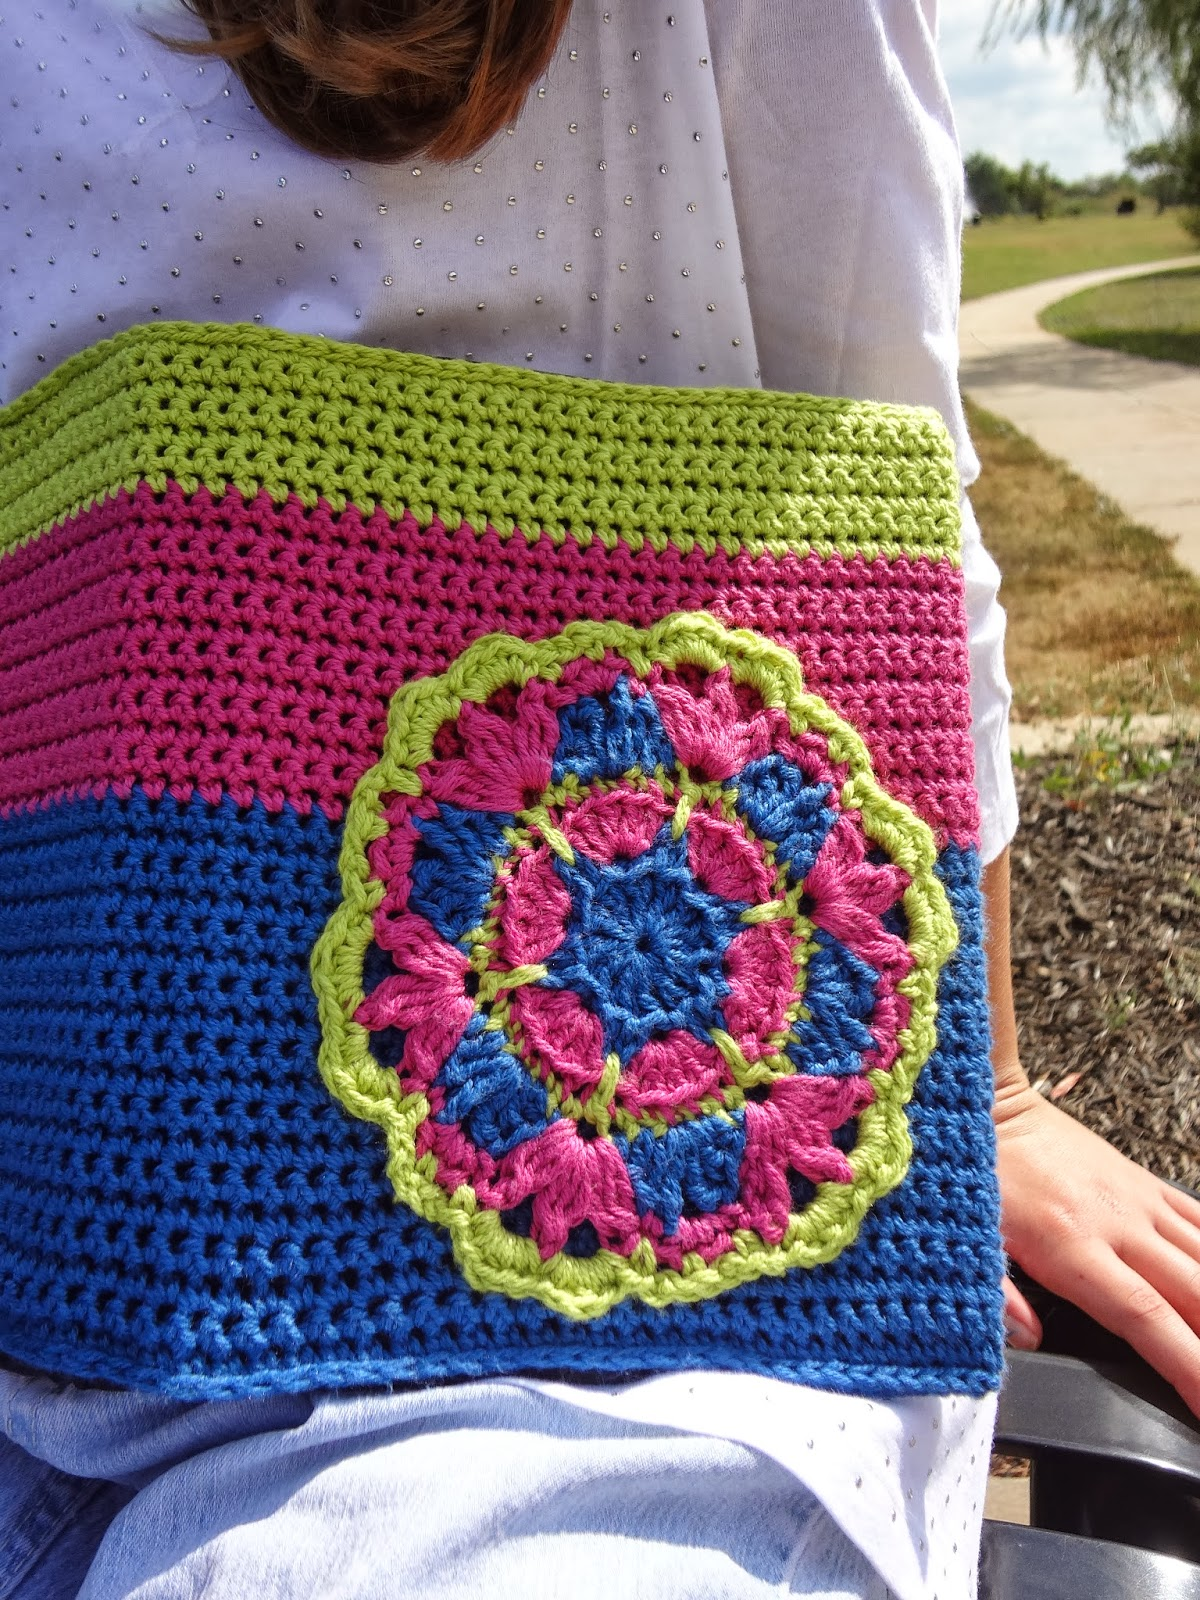 Green, pink, and blue crochet motif on a crochet book cover. Free pattern from Banana Moon Studio.